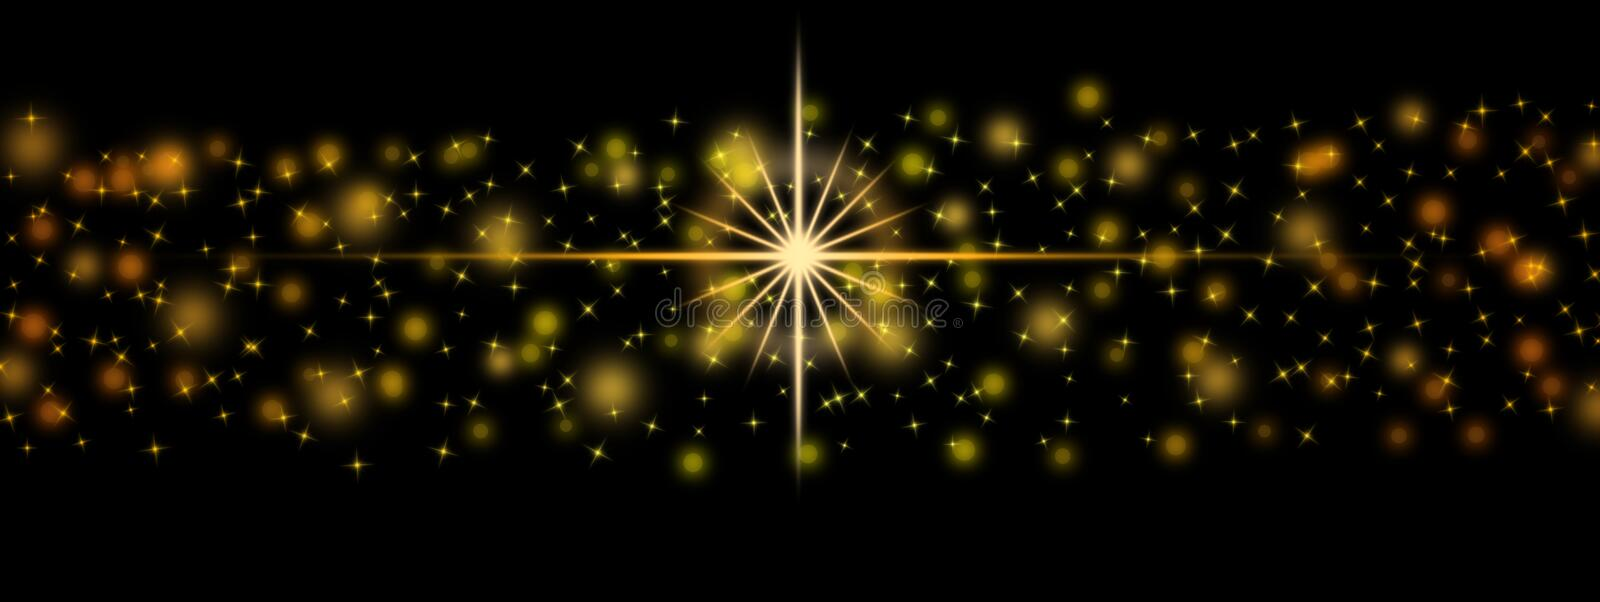 Abstract Bright Golden Lights, Sparkles and Bokeh in Dark Background Banner royalty free illustration